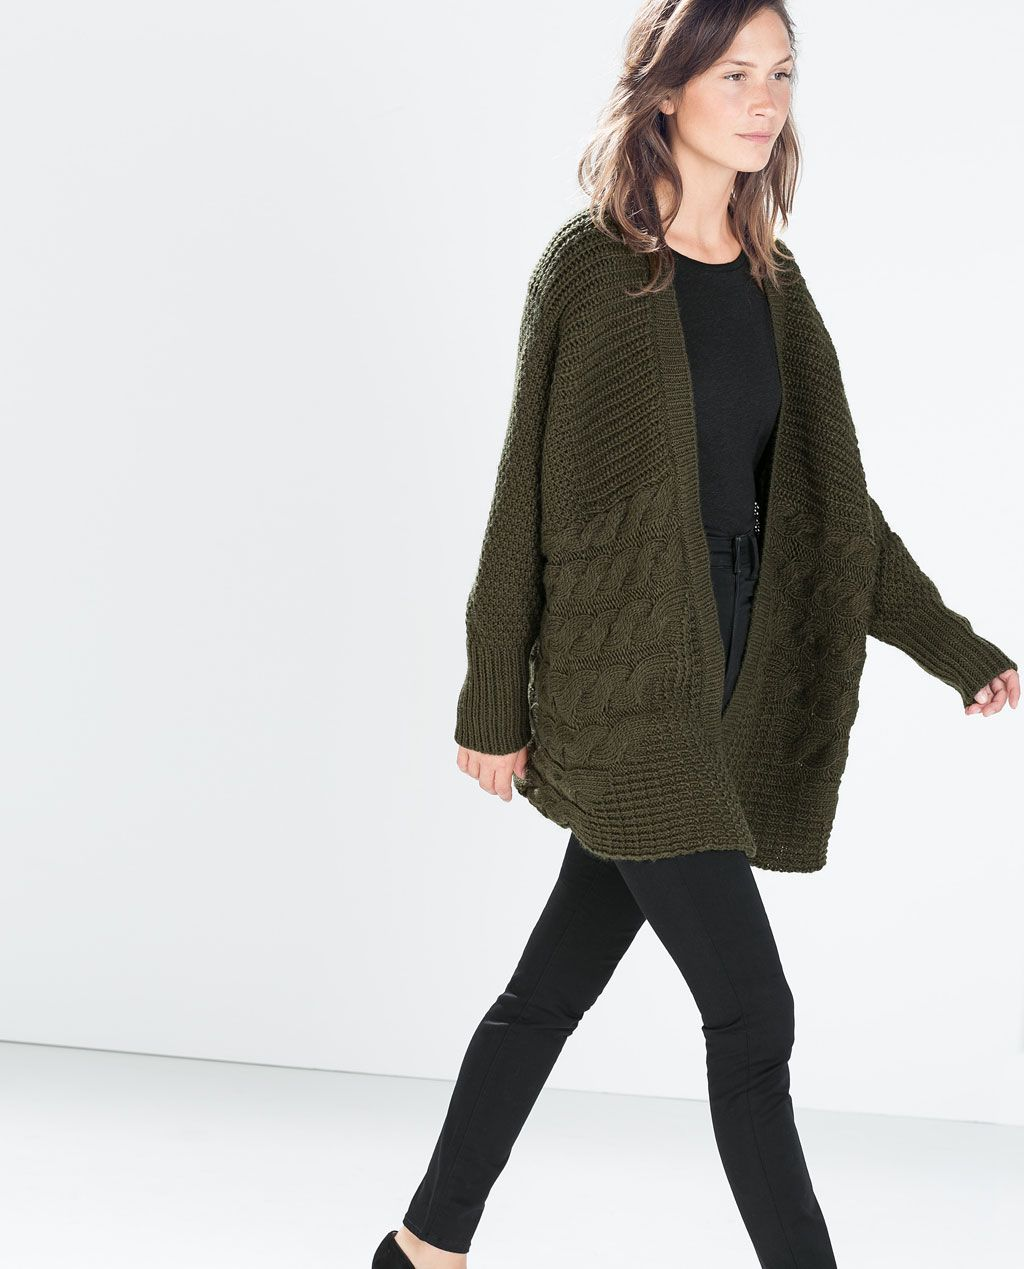 3118dfdf2c0f Image 3 of OVERSIZE CABLE KNIT CARDIGAN from Zara